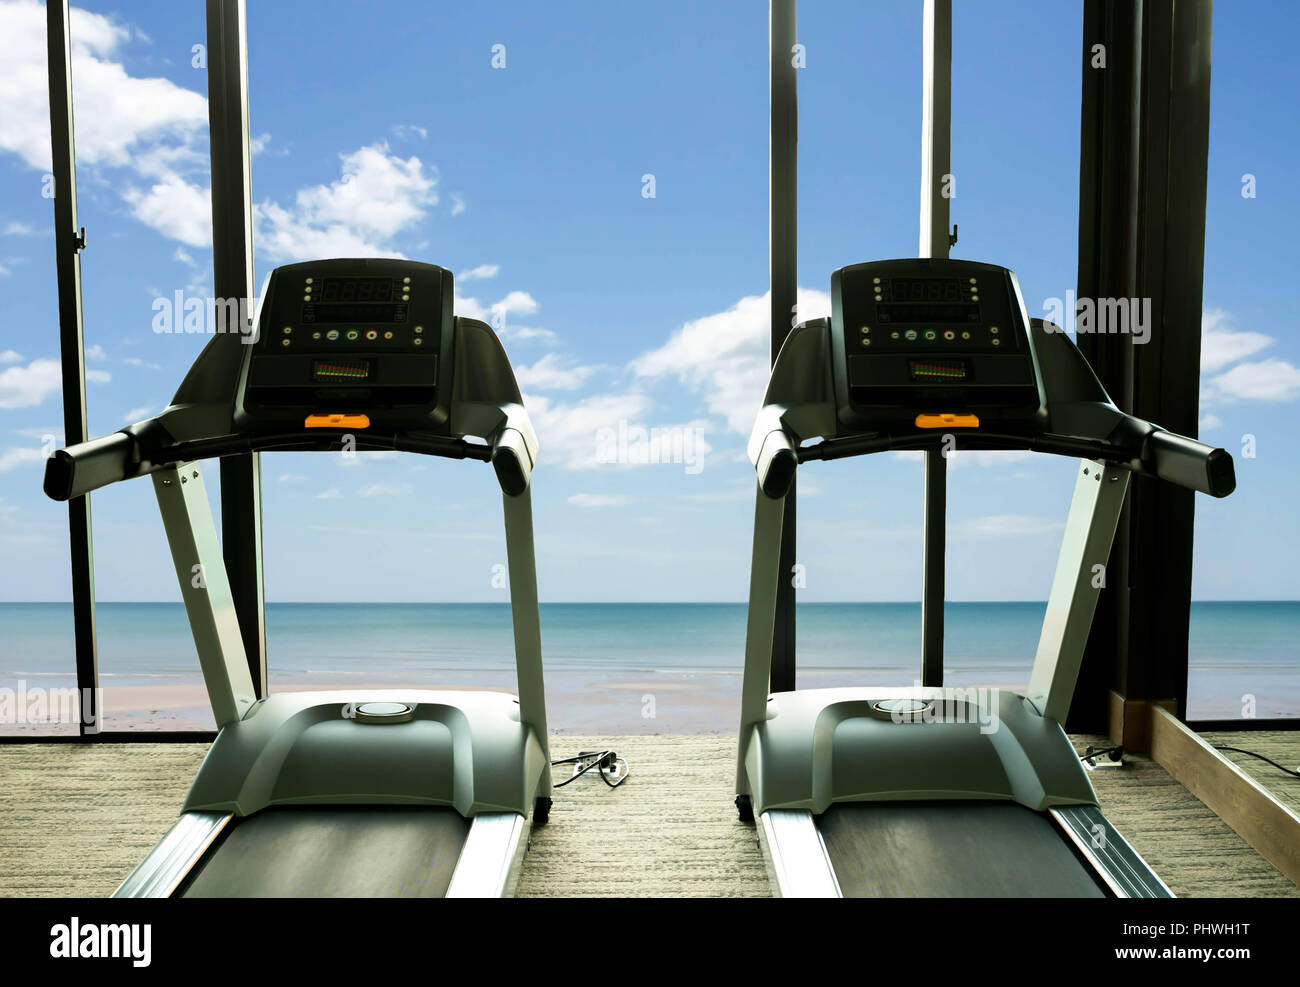 Concept Health Care Treadmill In Fitness Gym Stock Photo 217535748